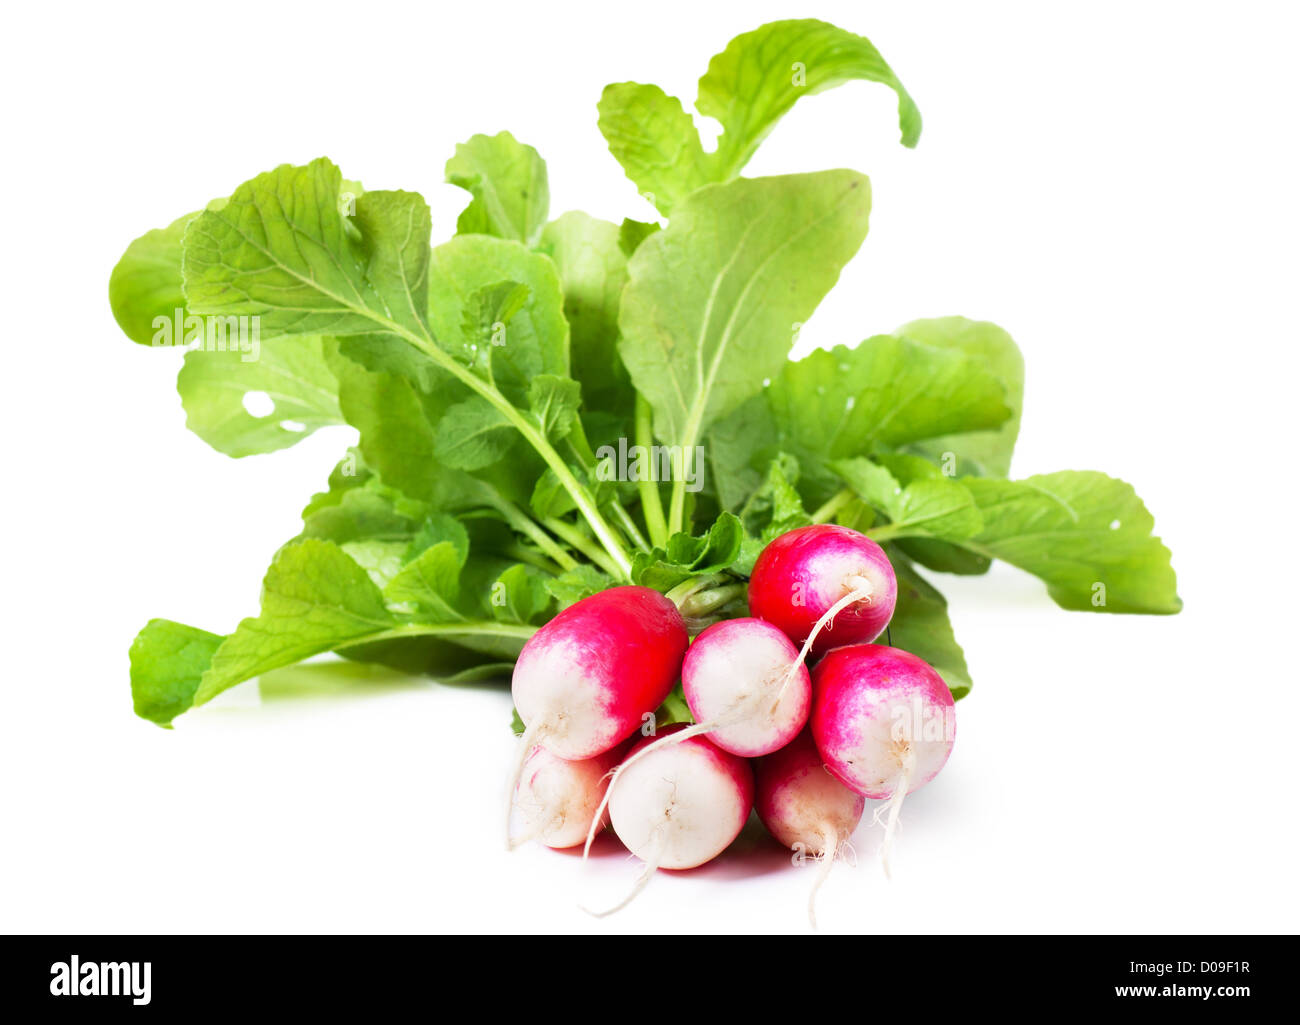 A bunch of fresh garden radishes over white background Stock Photo